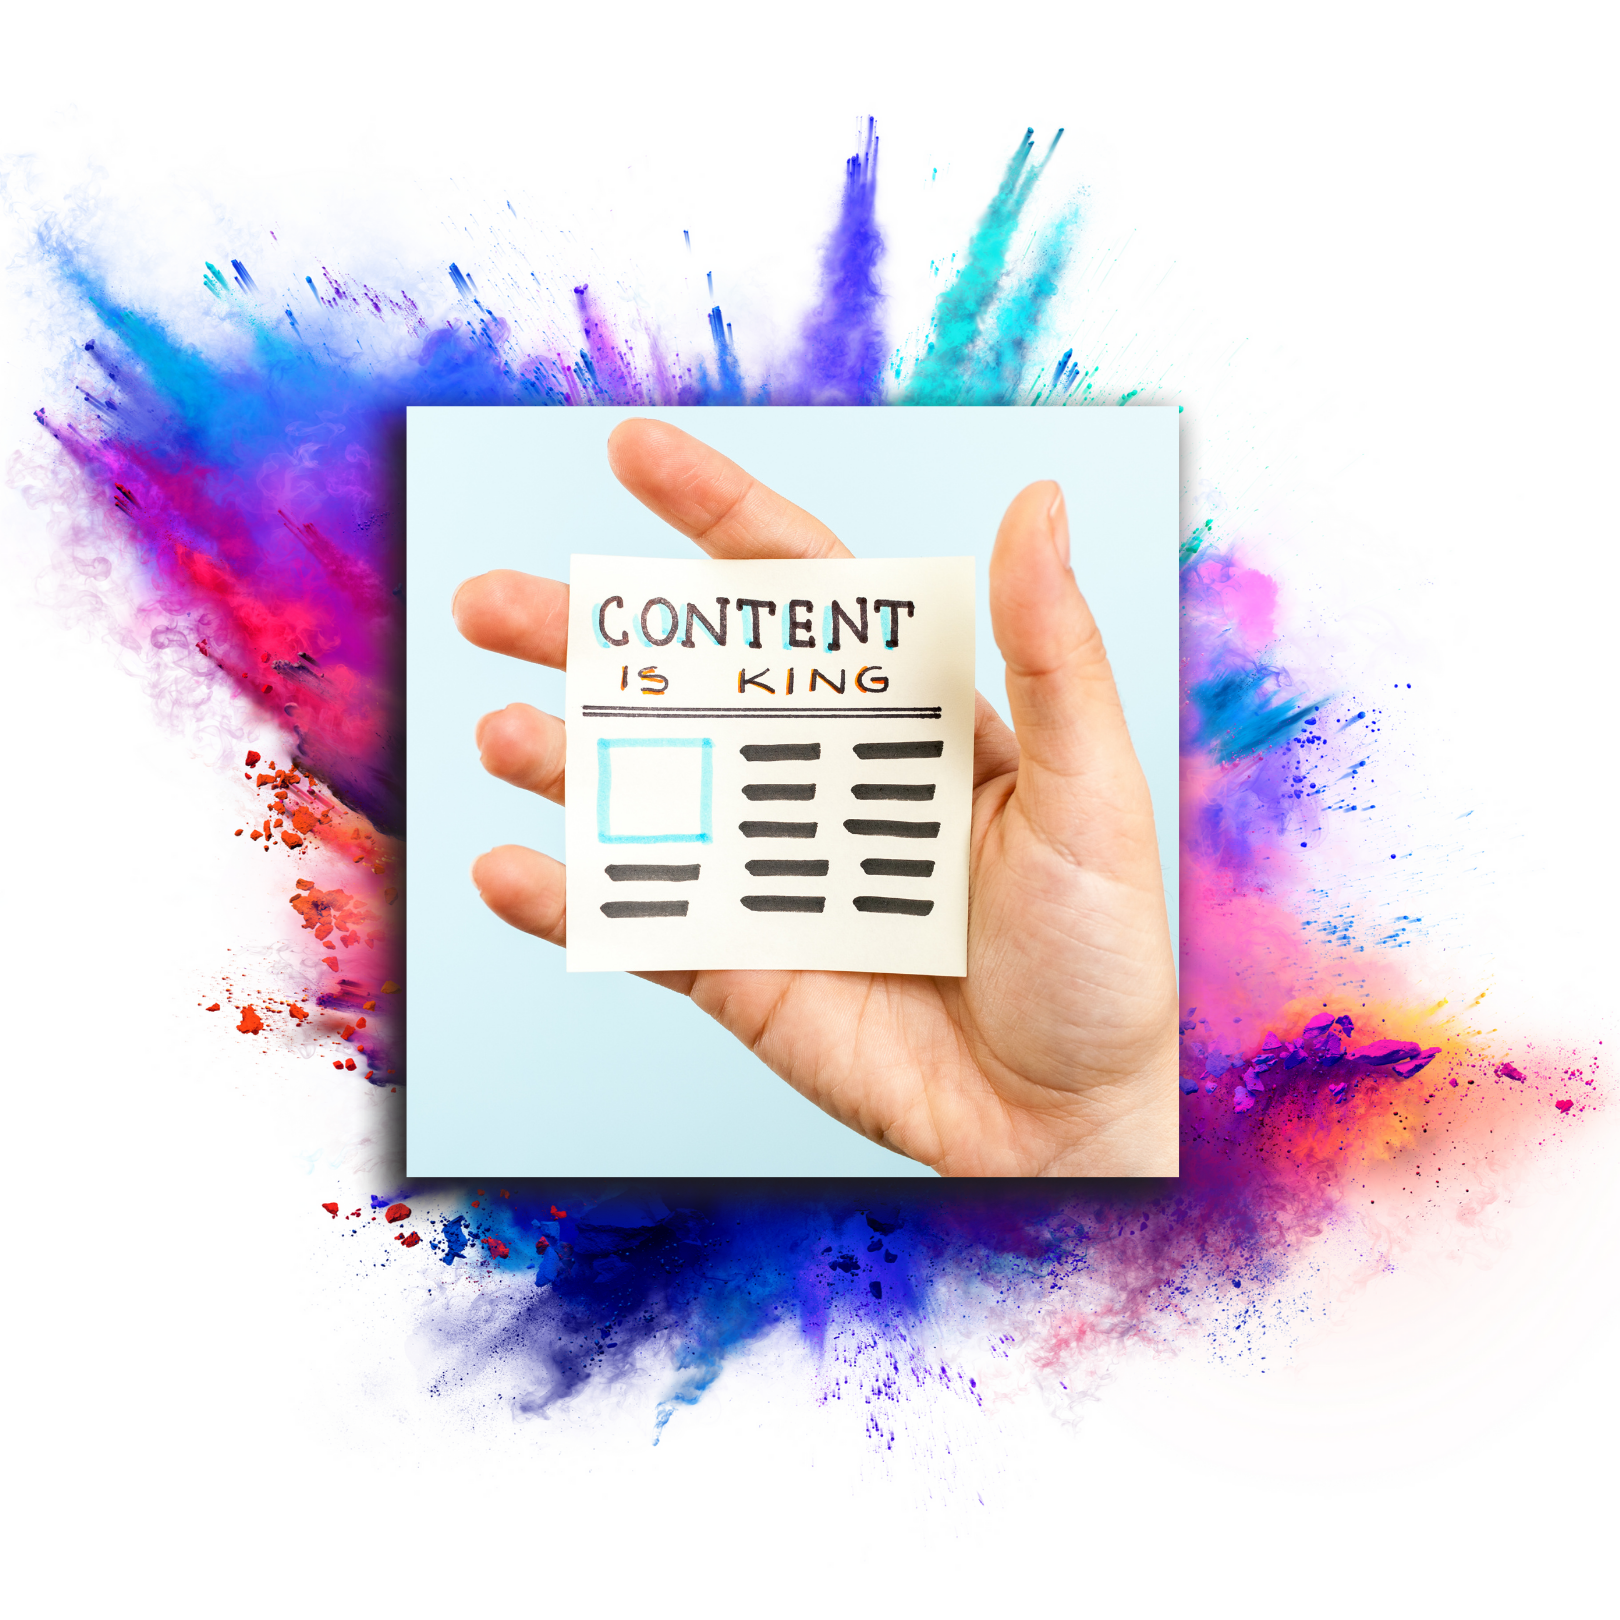 content generation page image